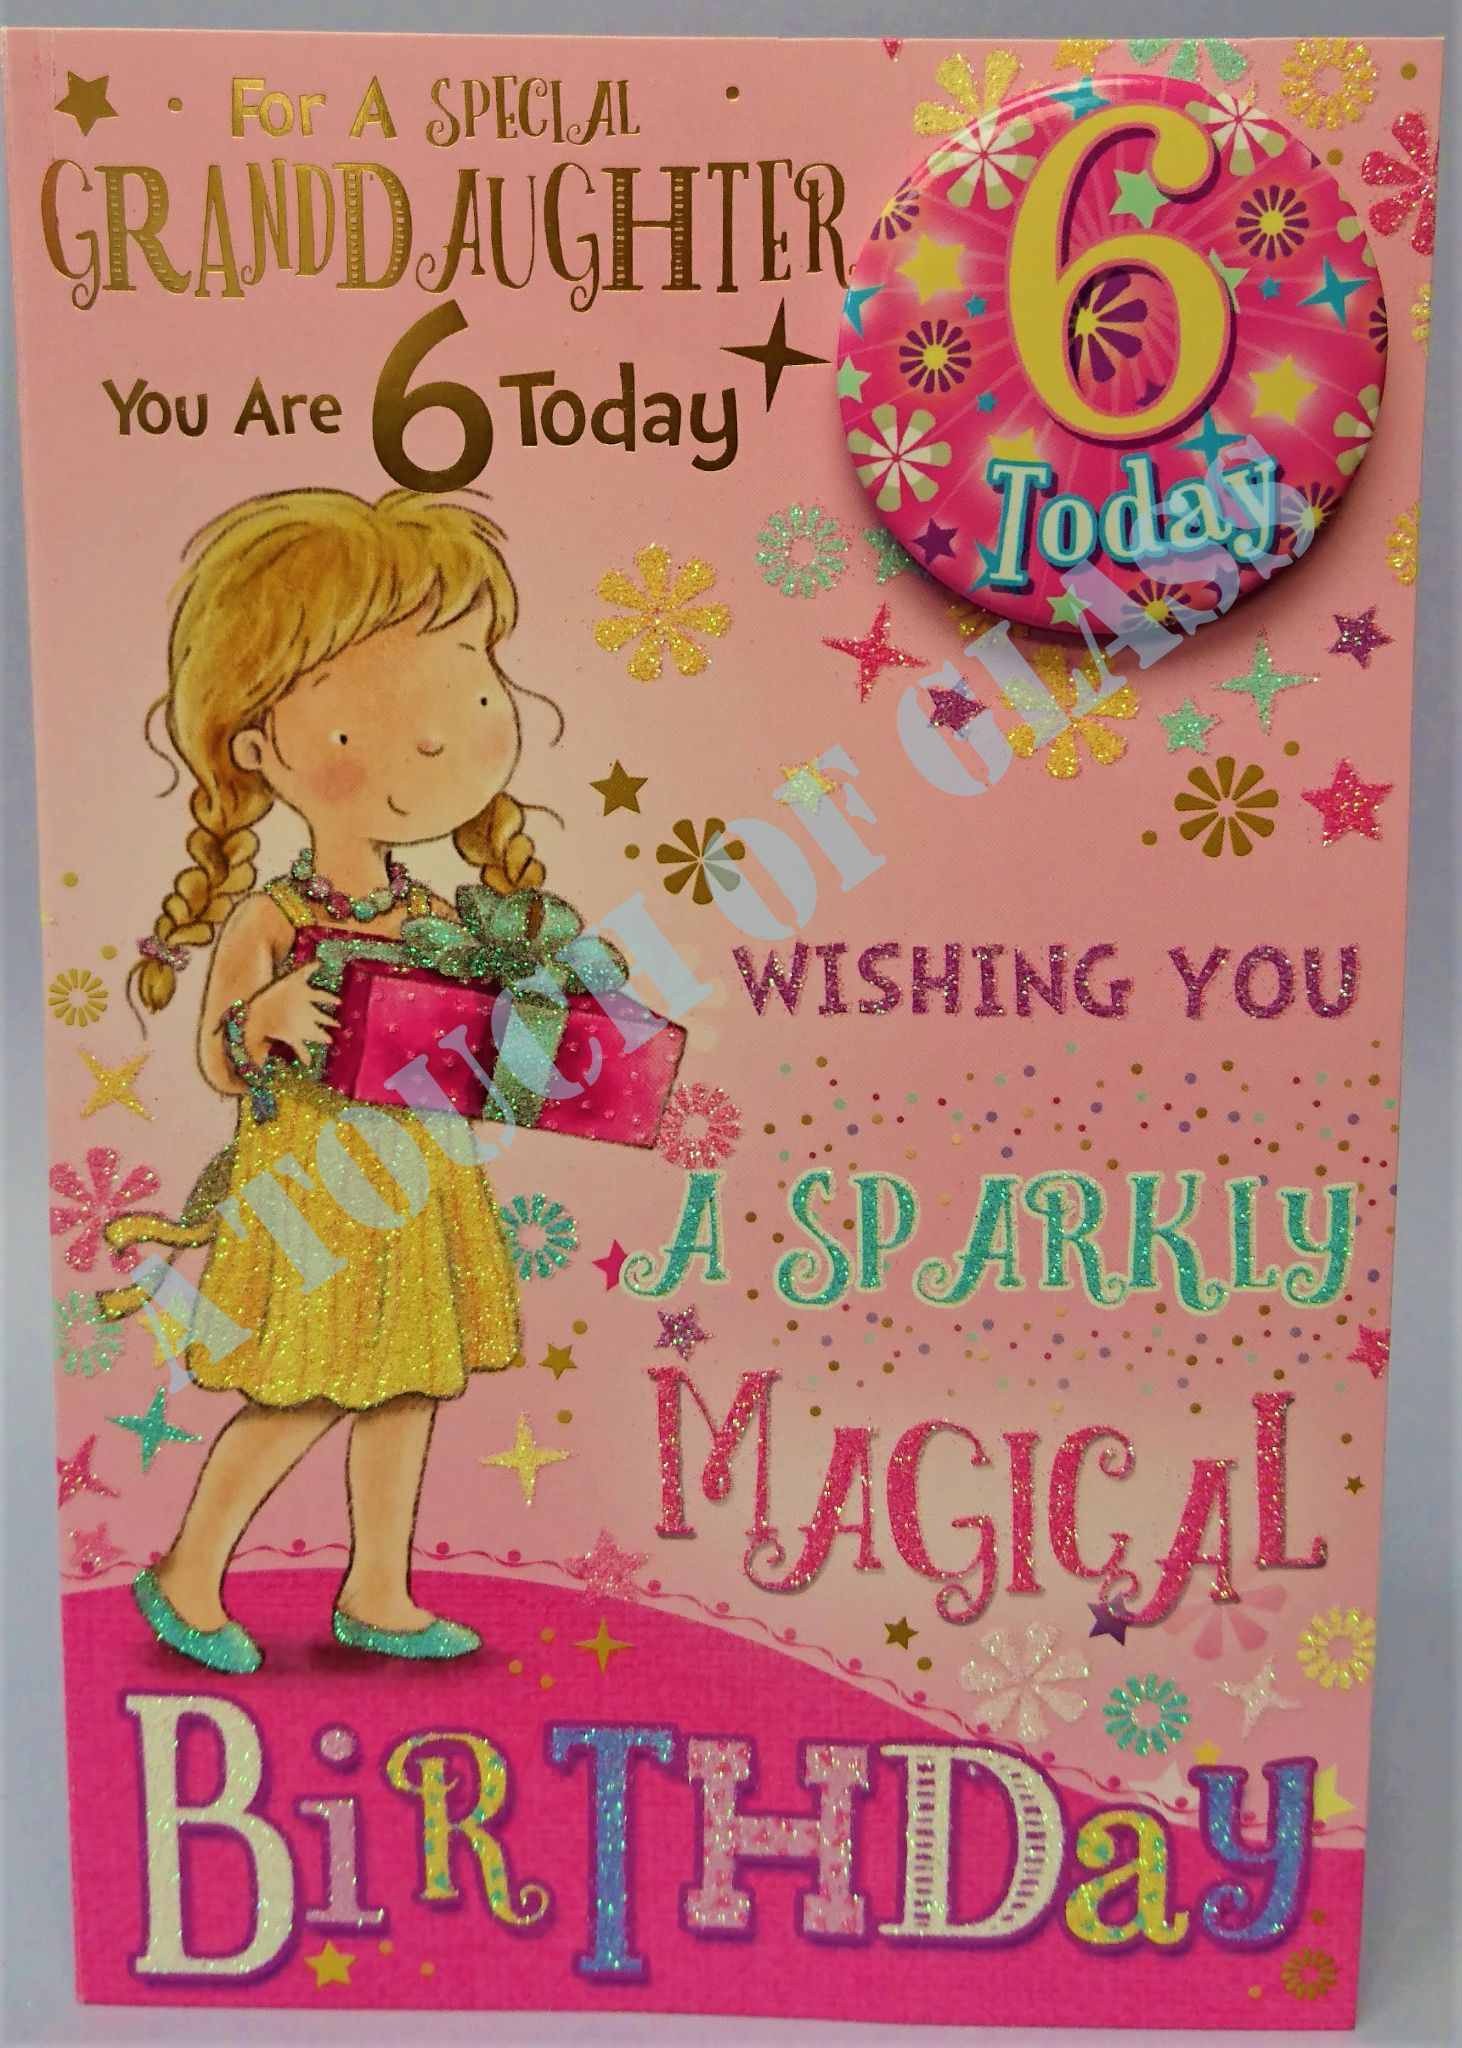 birthday card for 6 year old granddaughter ; badge-birthday-card-6-year-old-granddaughter-4267-1-p